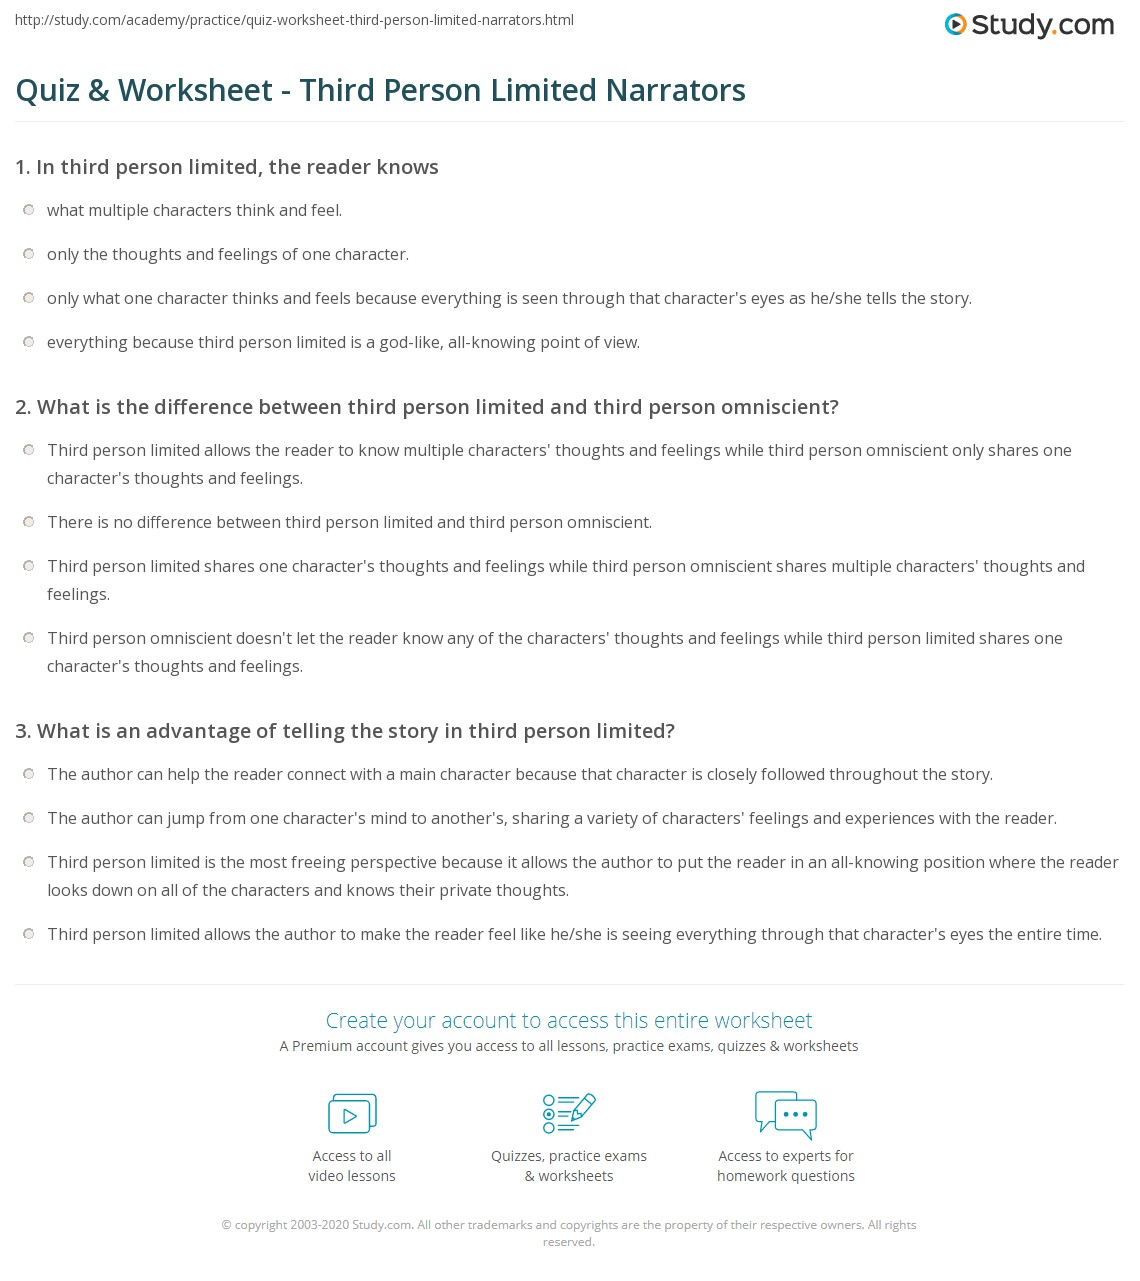 Quiz & Worksheet - Third Person Limited Narrators | Study.com